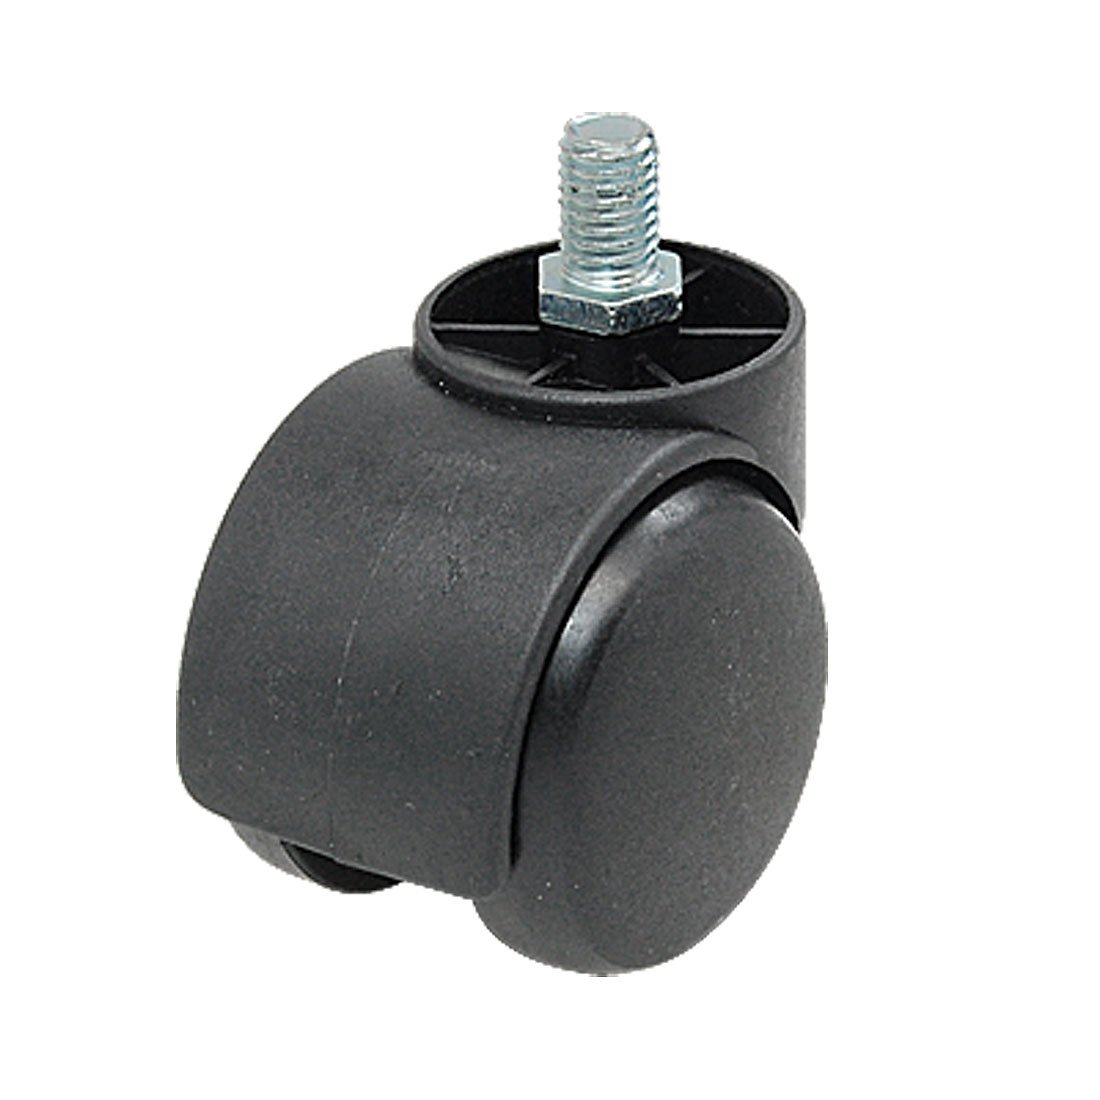 Uxcell Threaded Stem Connector Twin wheel Chair Caster Black